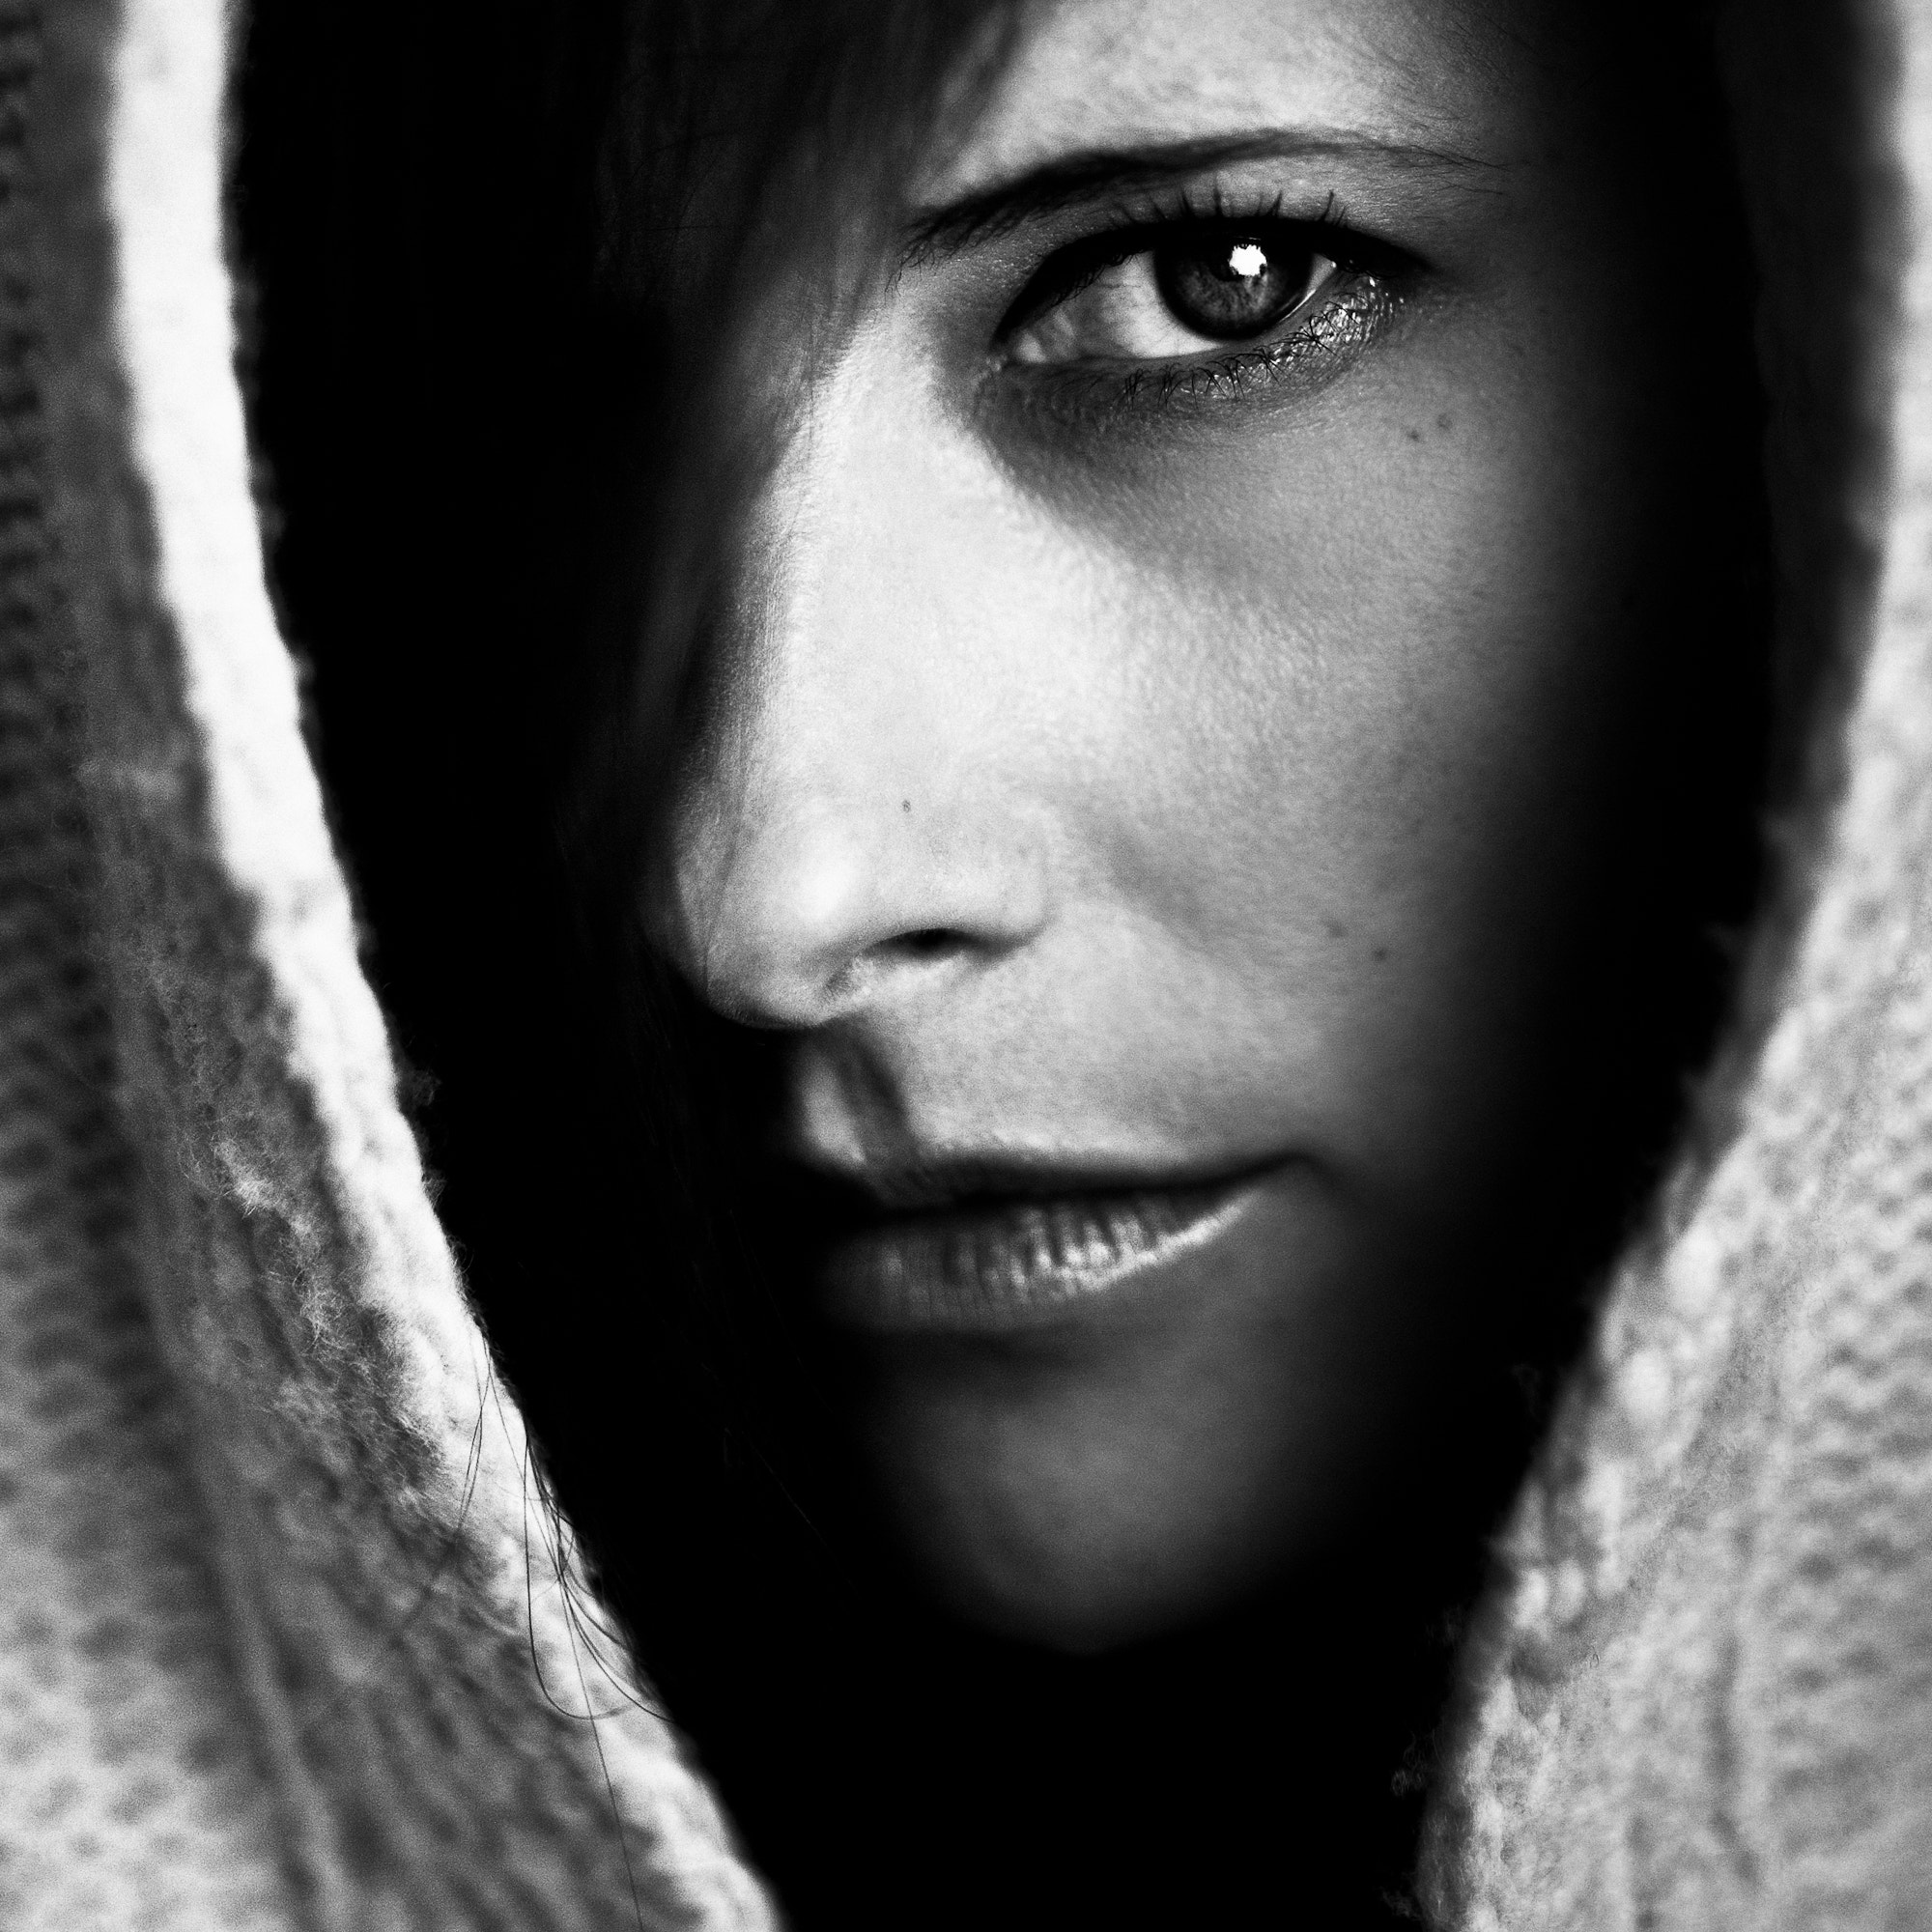 Photograph Emilie by Benoit COURTI on 500px